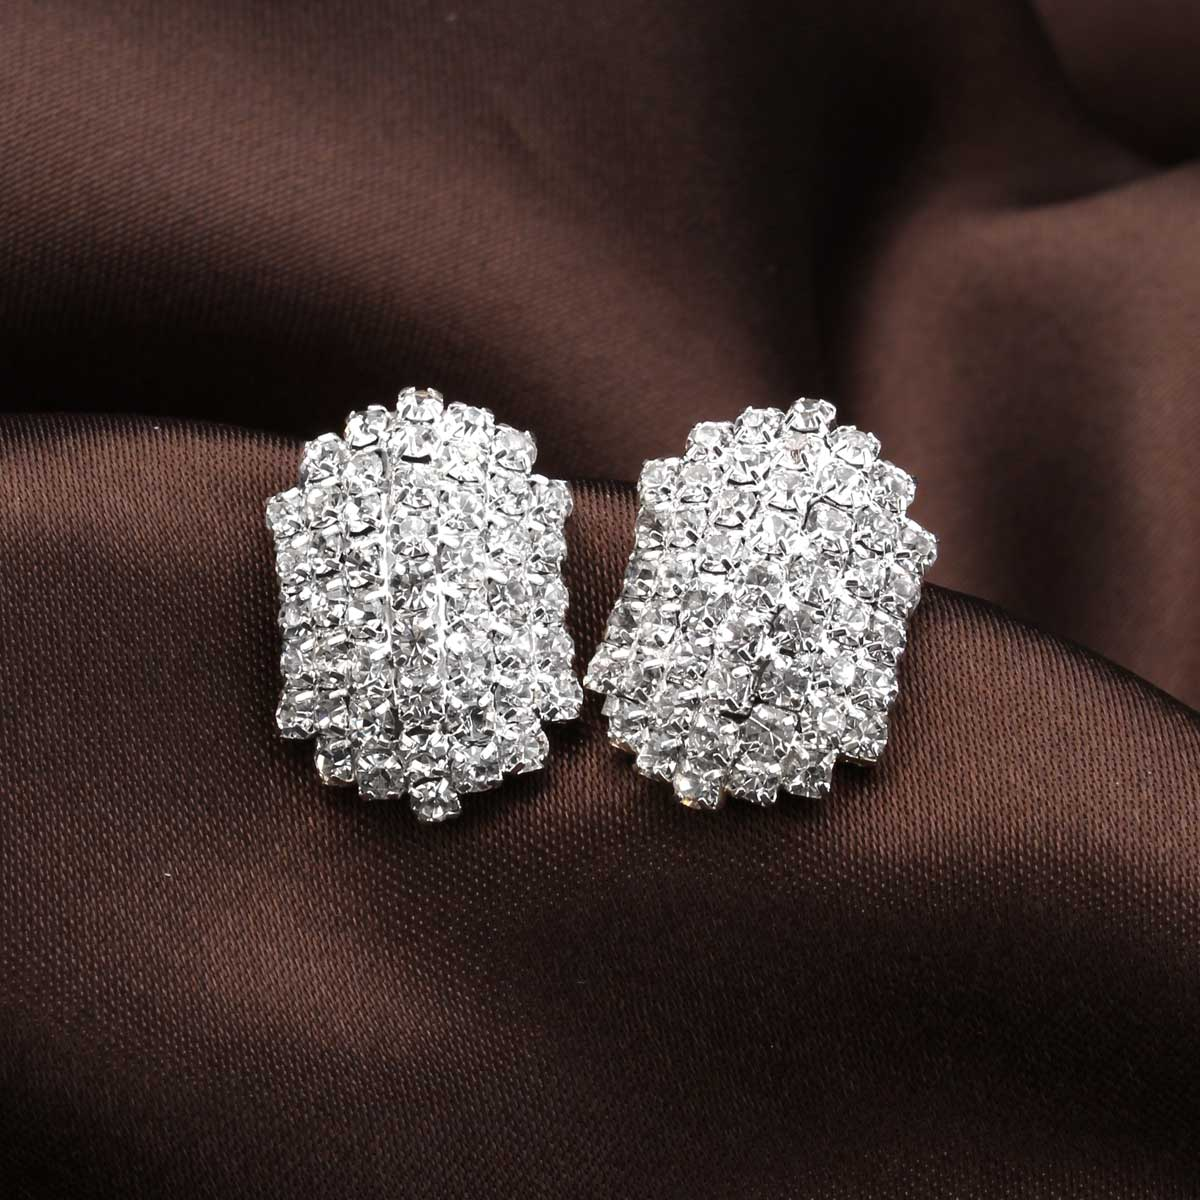 Full Crystal Rhinestone Beetle Stud Earrings Women Jewelry